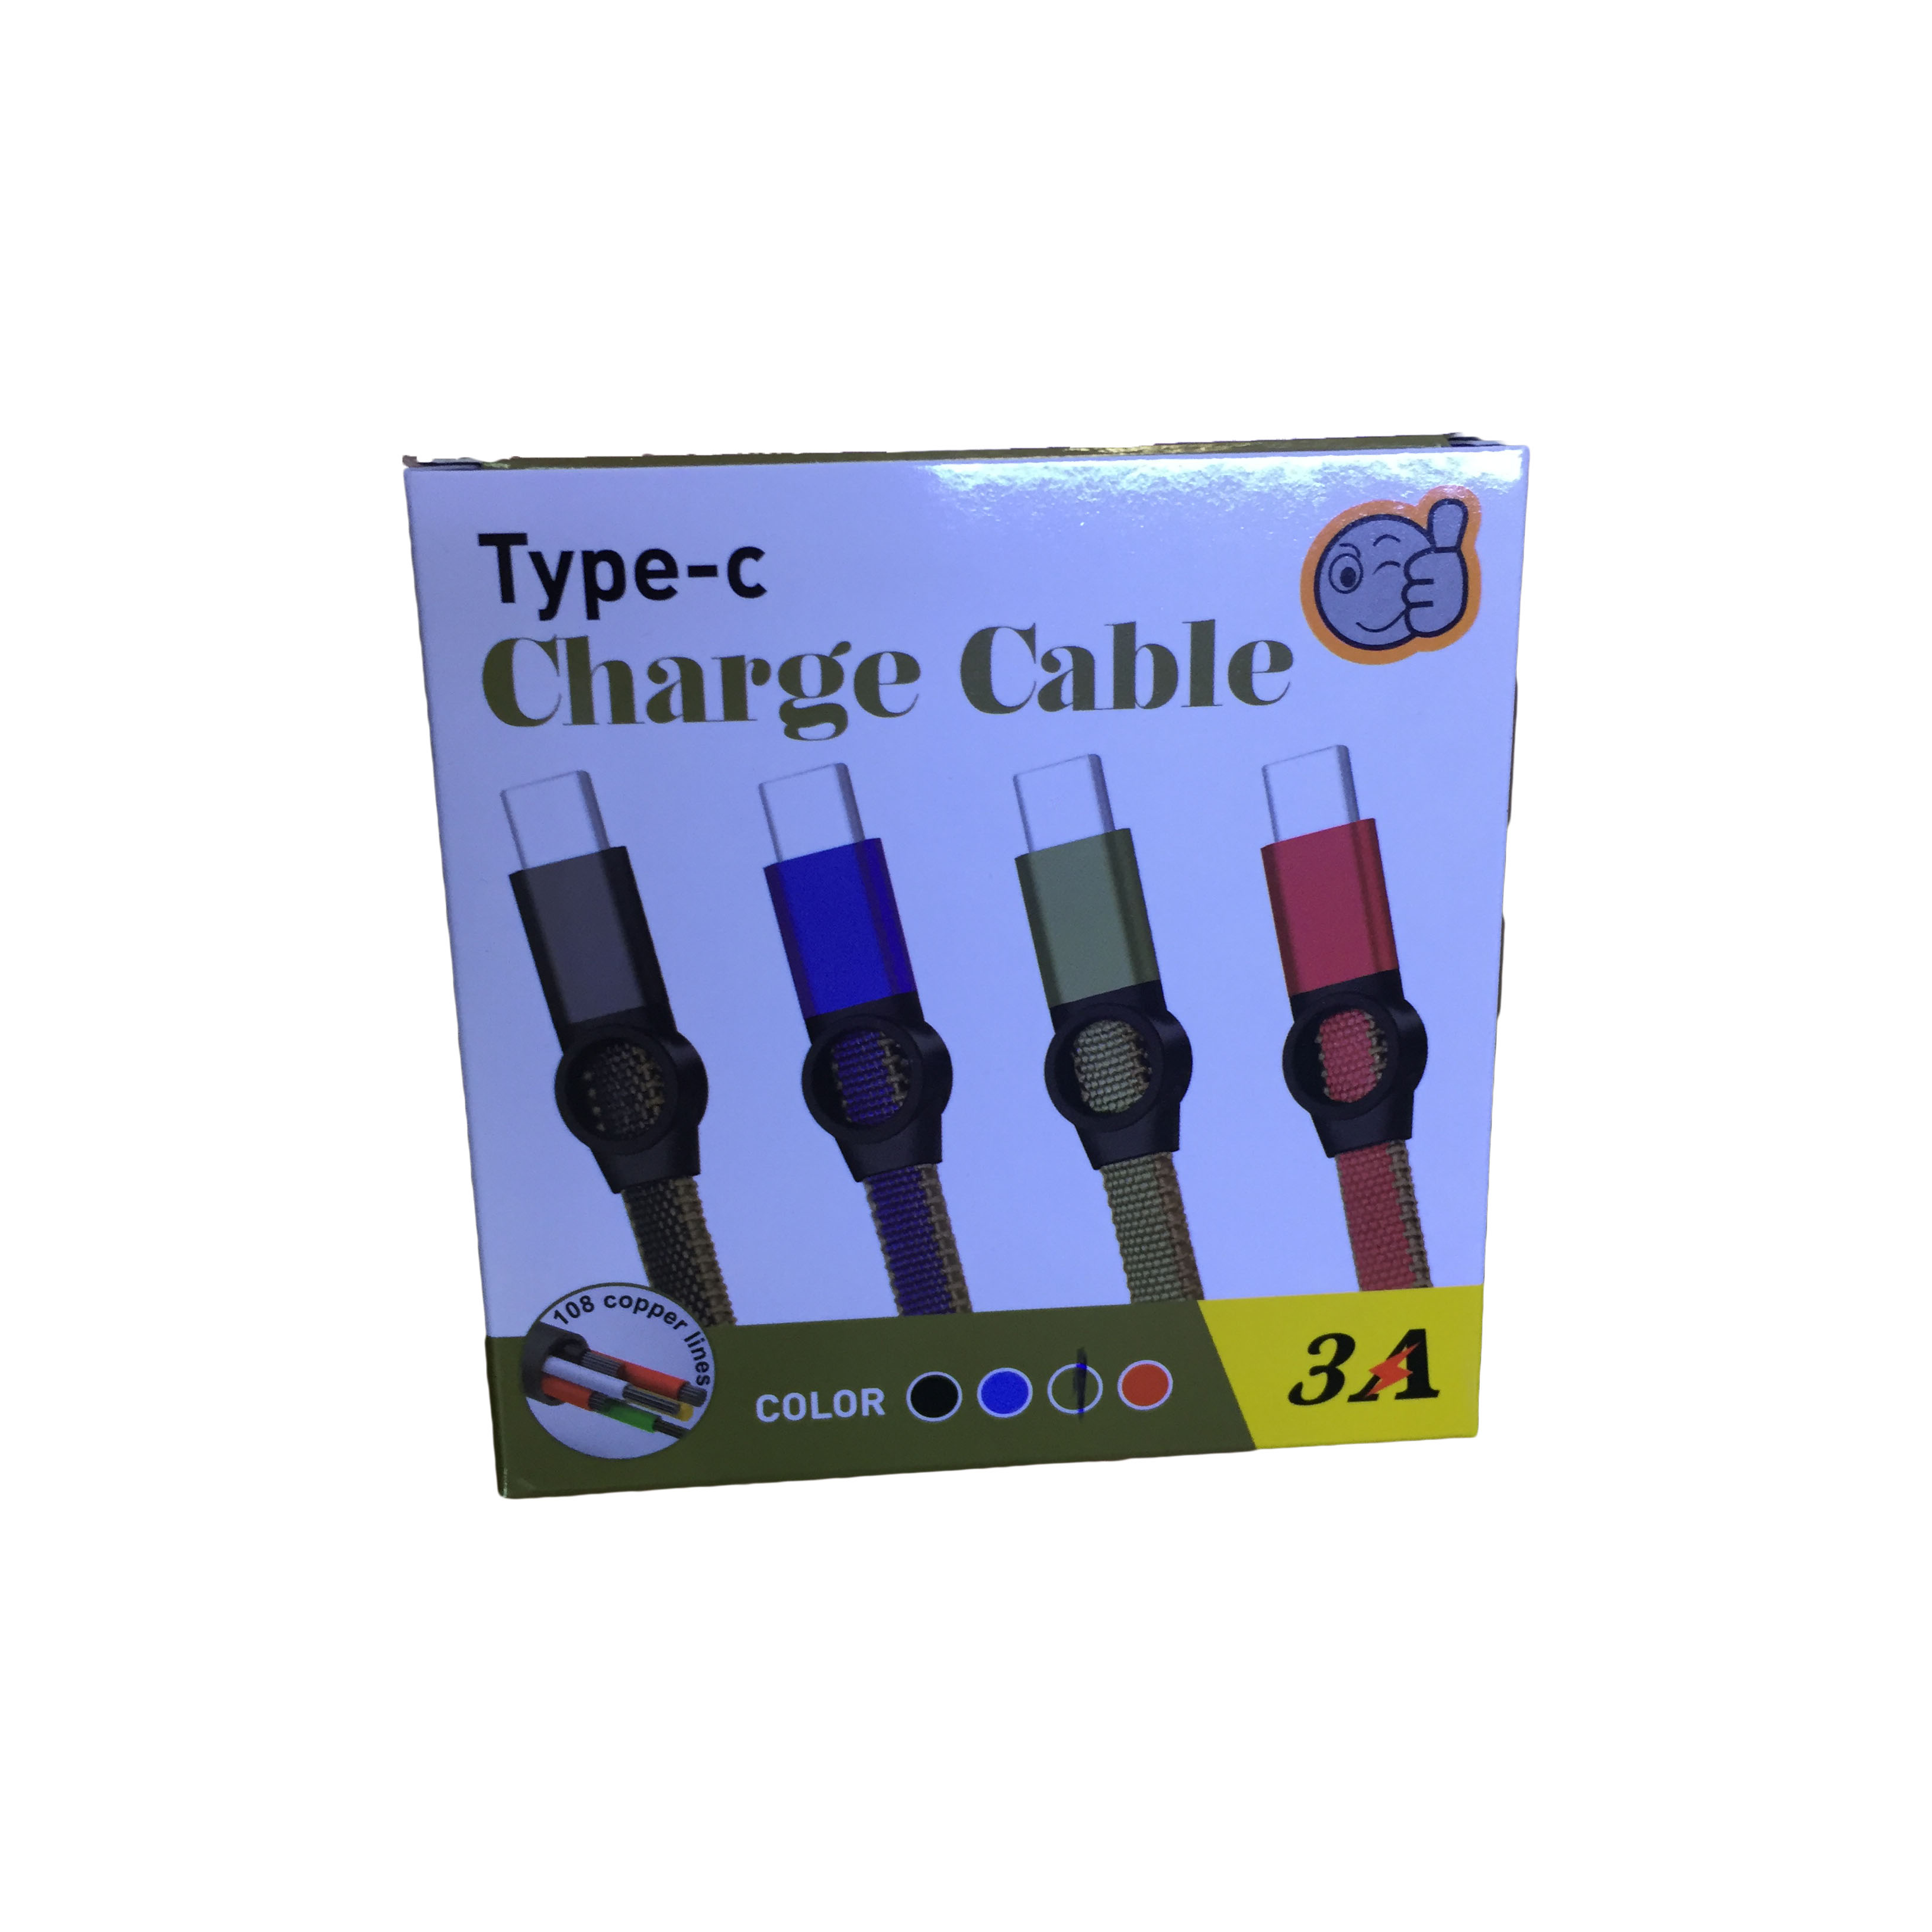 CABLE  USB TYPE-C DATA & CHARGE FOR SMARTPHONE 3.0A A919 قماش جوده عاليه ,Other Smartphone Acc